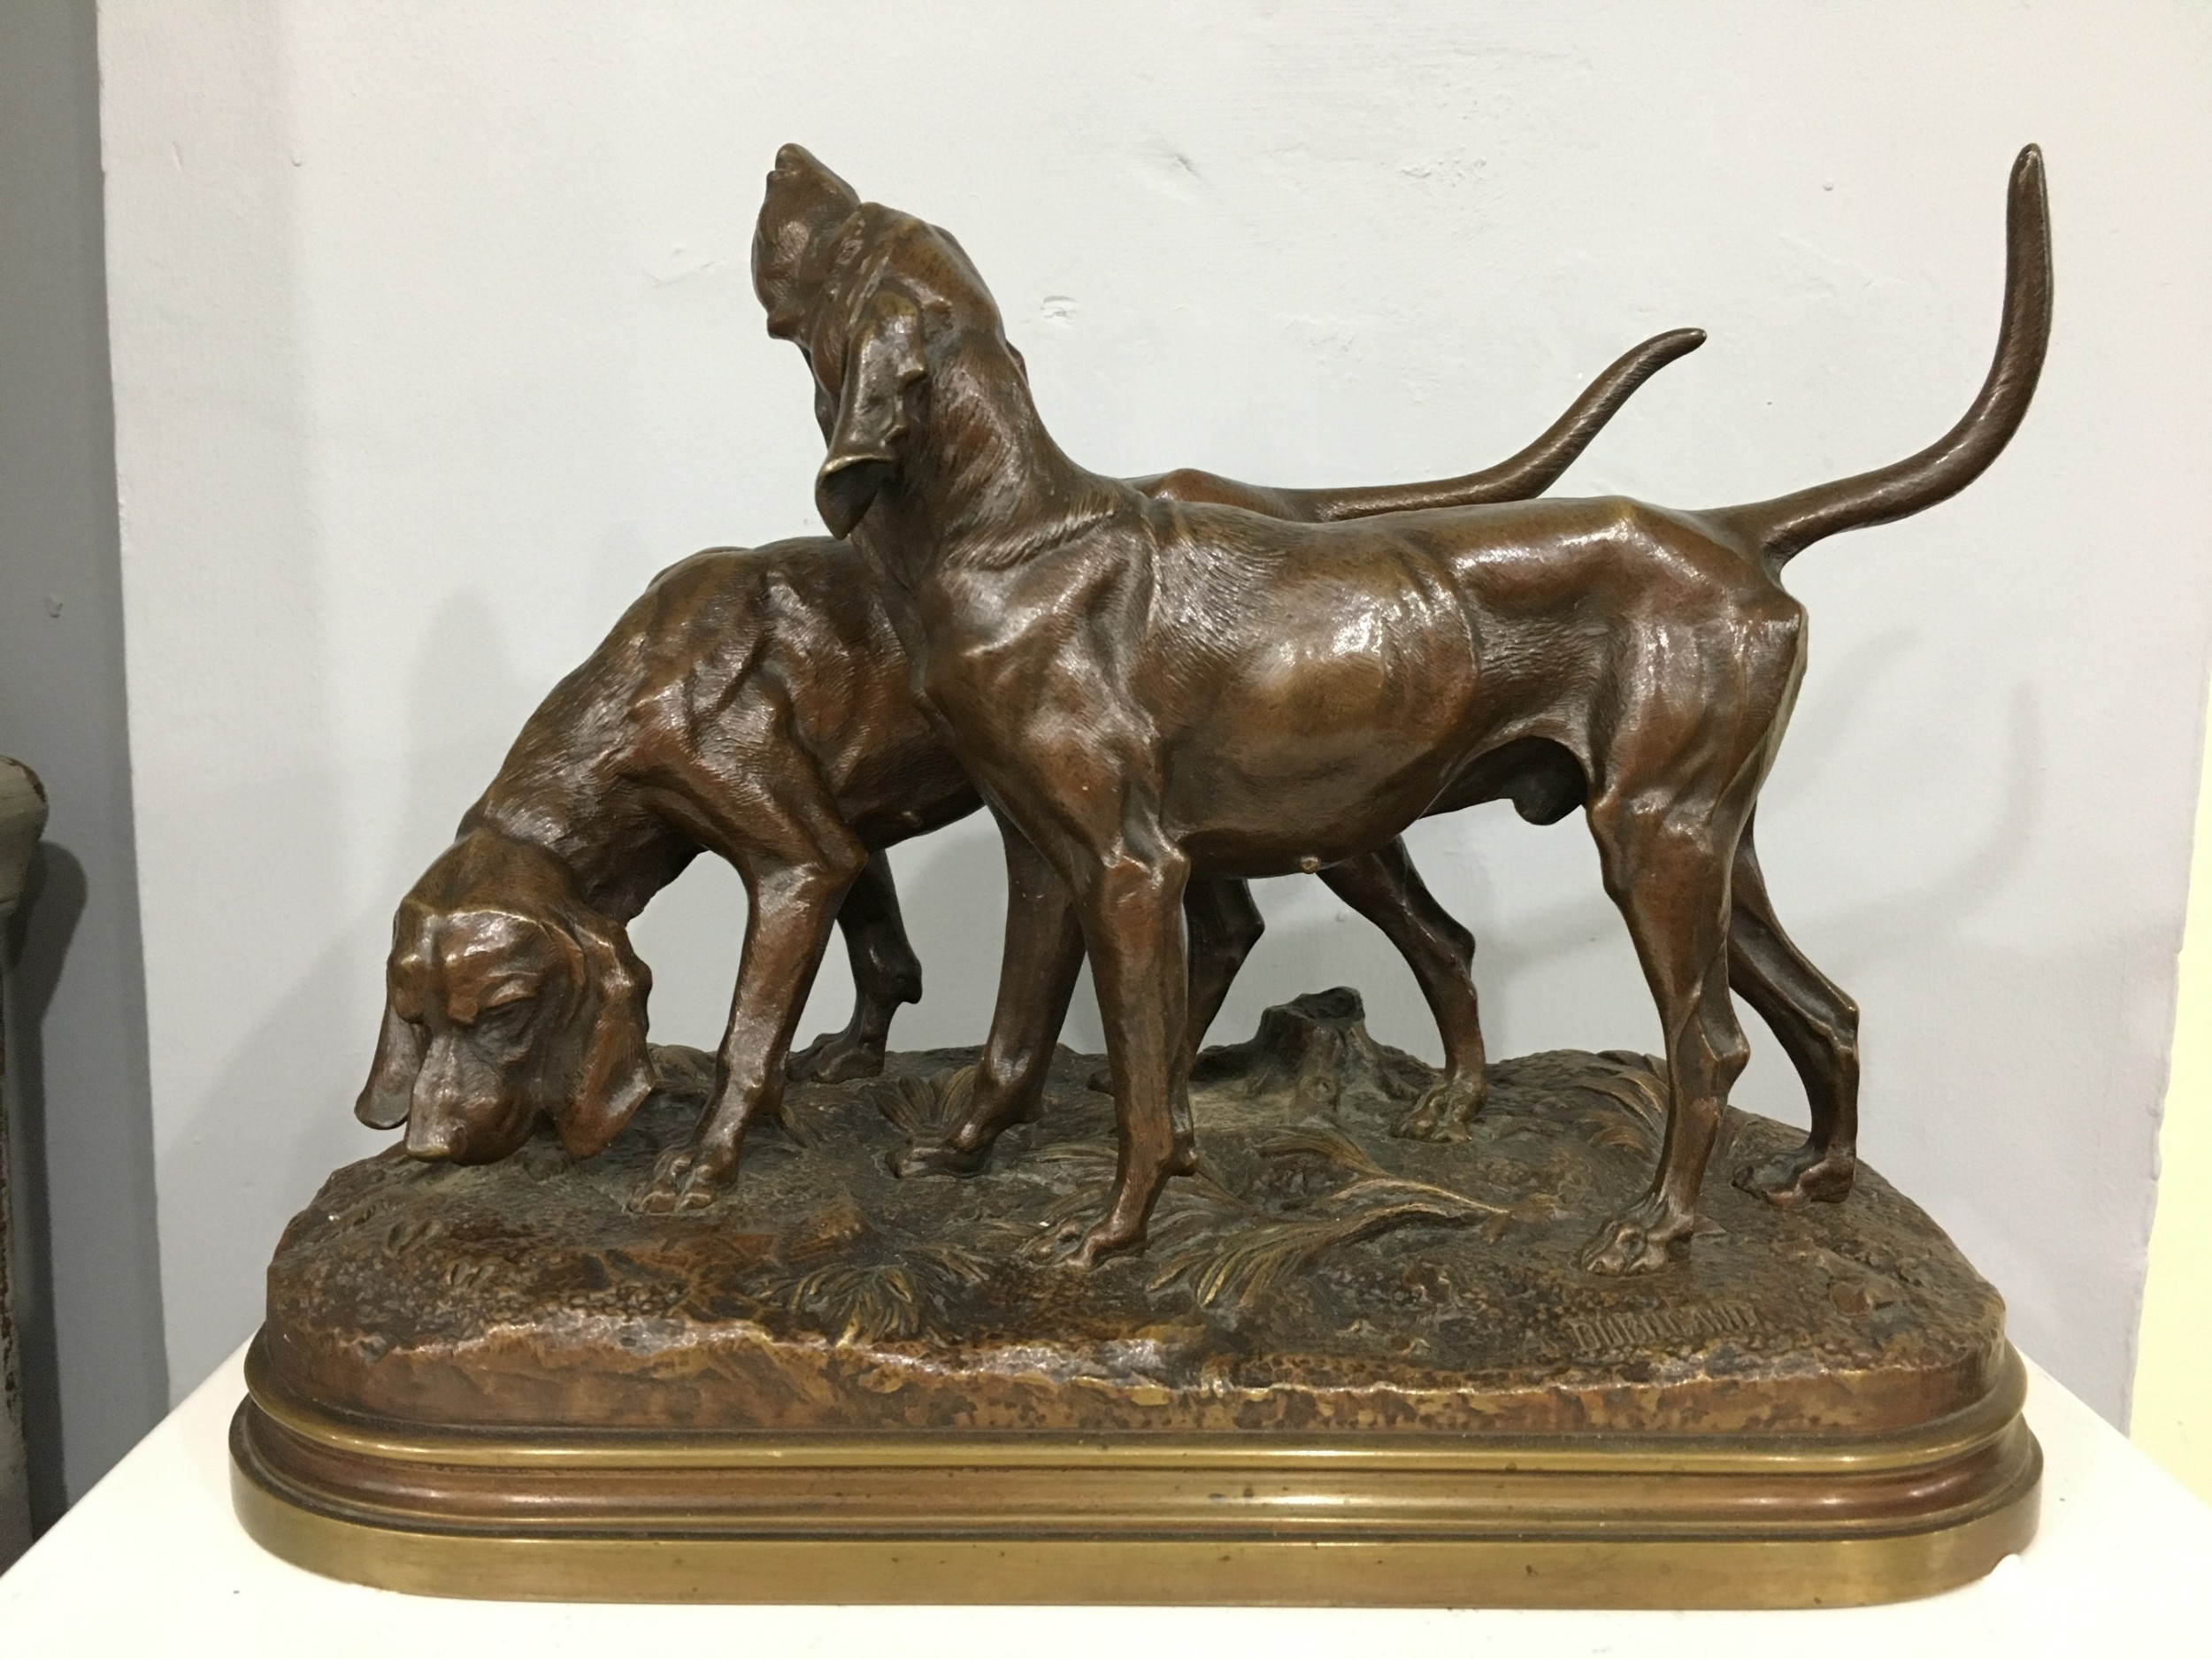 alfred dubucand signed orignial french bronze casting of a pair of hunting dogs c19th